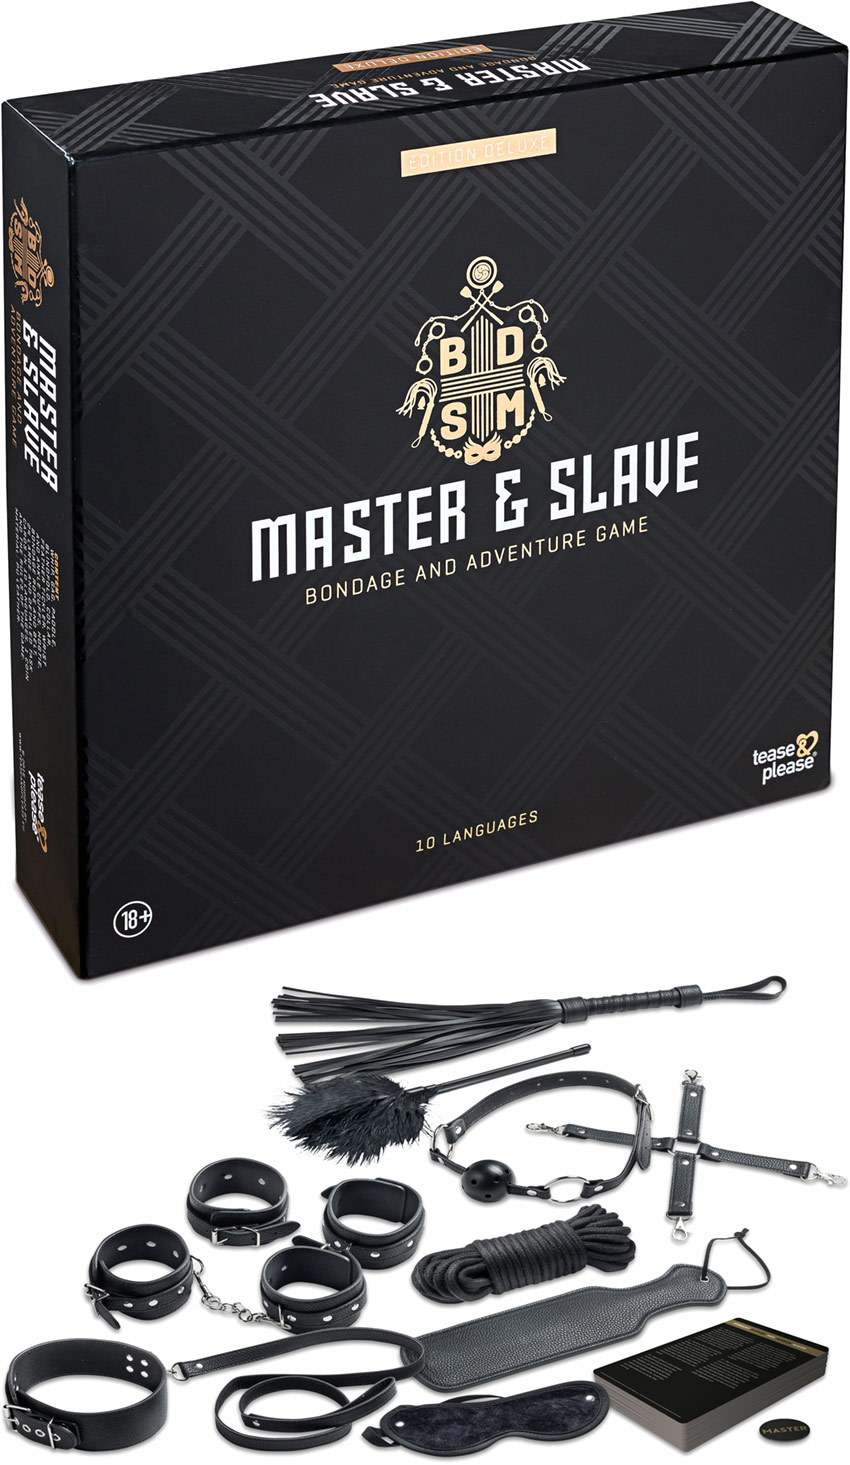 Master & Slave game & bondage accessories (for couples) - Deluxe